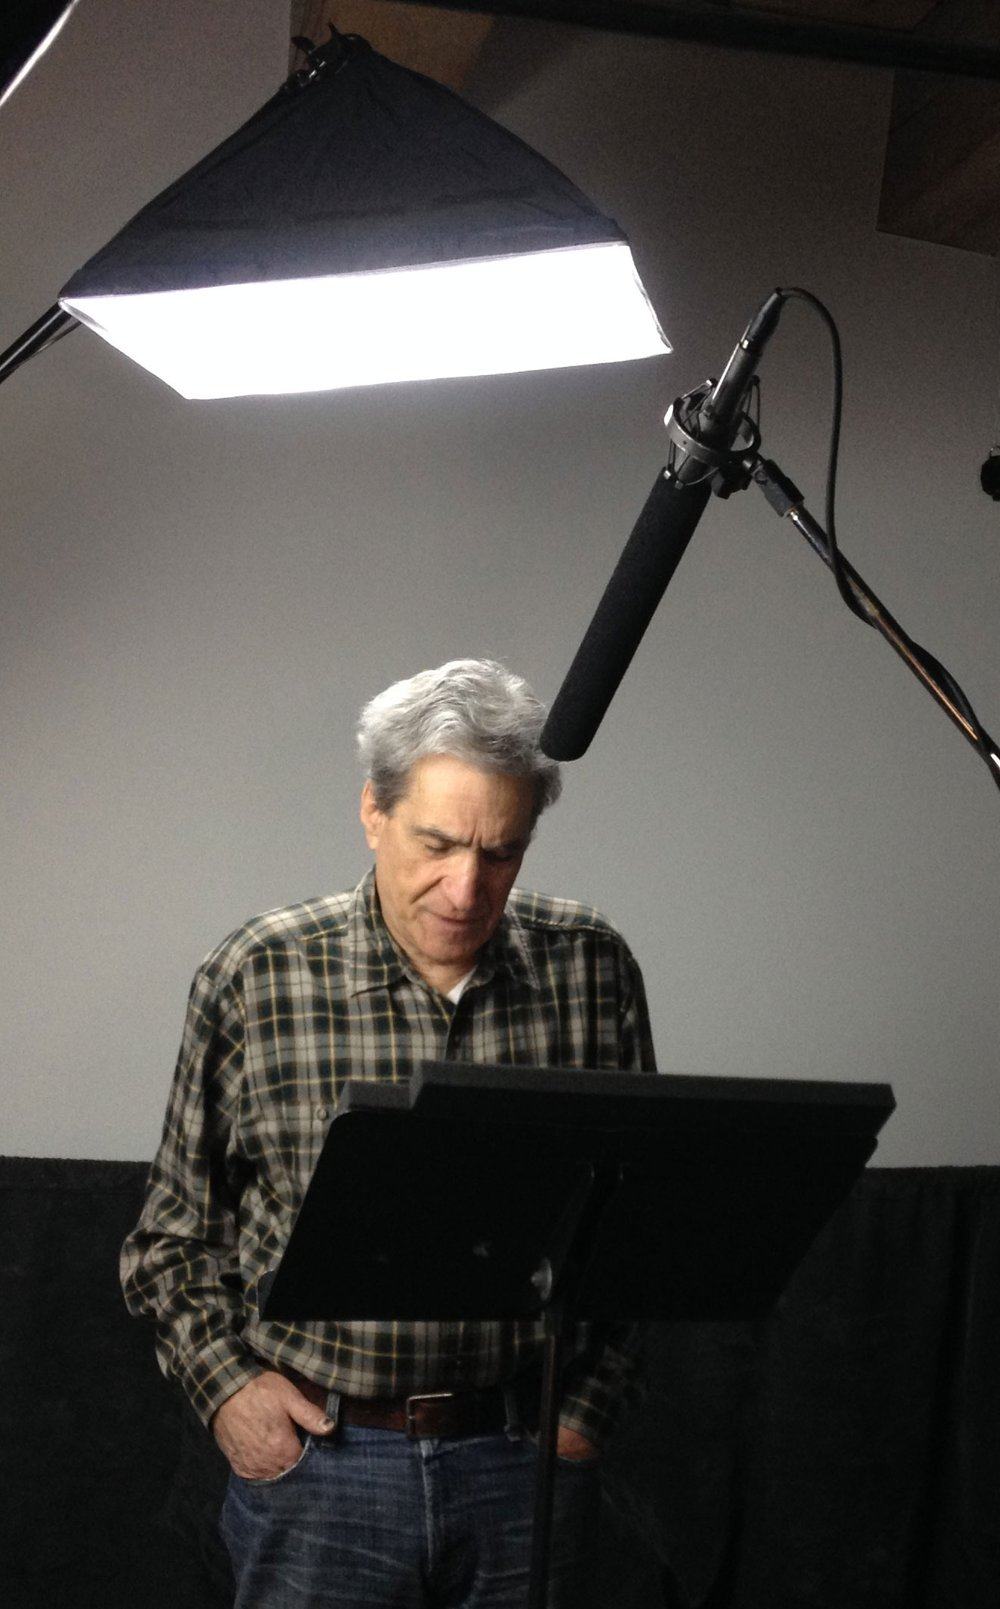 Behind the scenes: US Poet Laureate Robert Pinsky in the studio